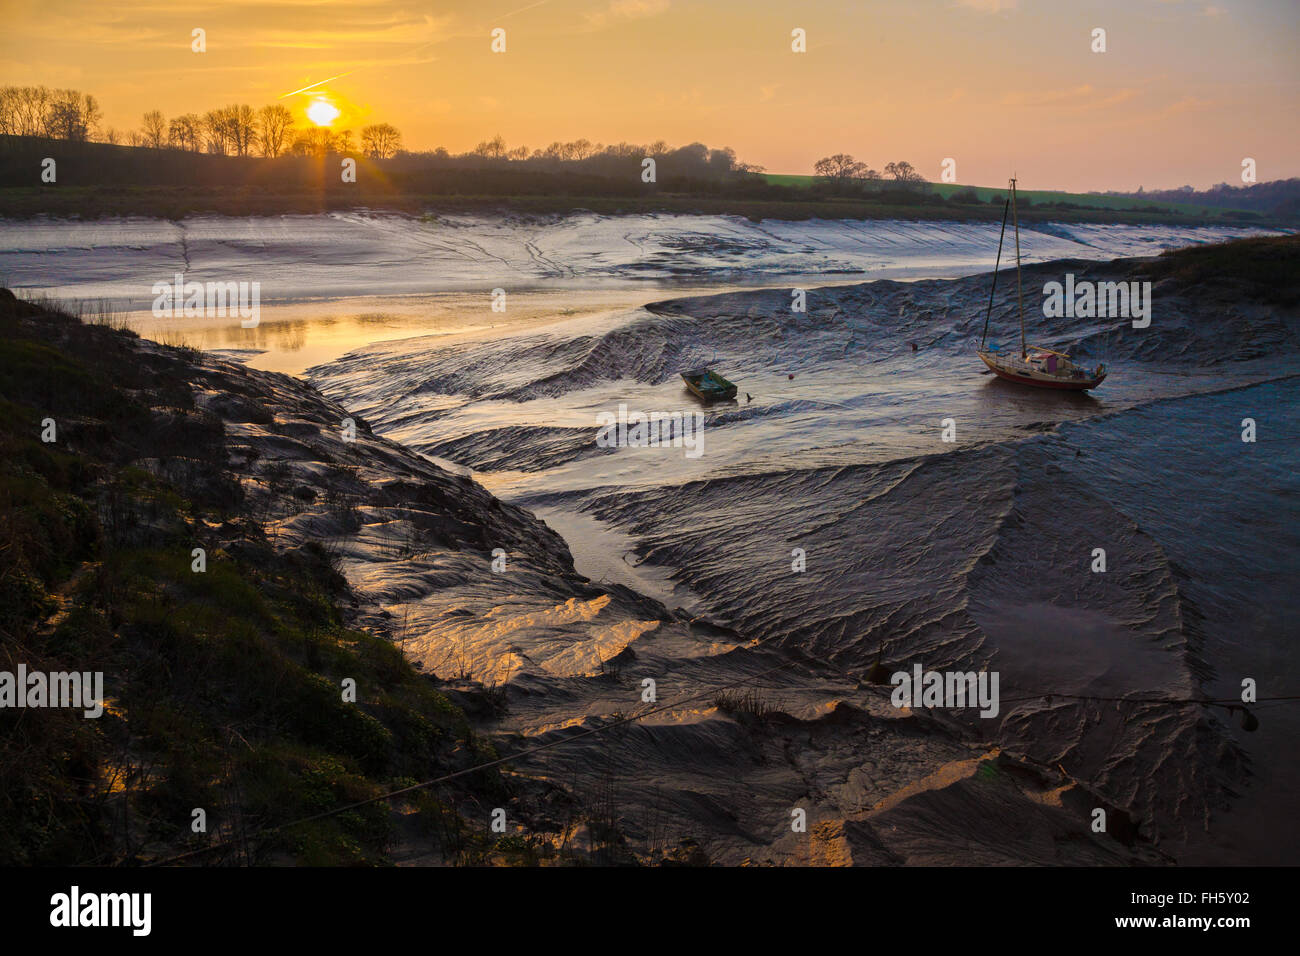 Sunset and low tide over the river Avon at Sea MIlls near Bristol UK Site of the Roman port of Abona - Stock Image